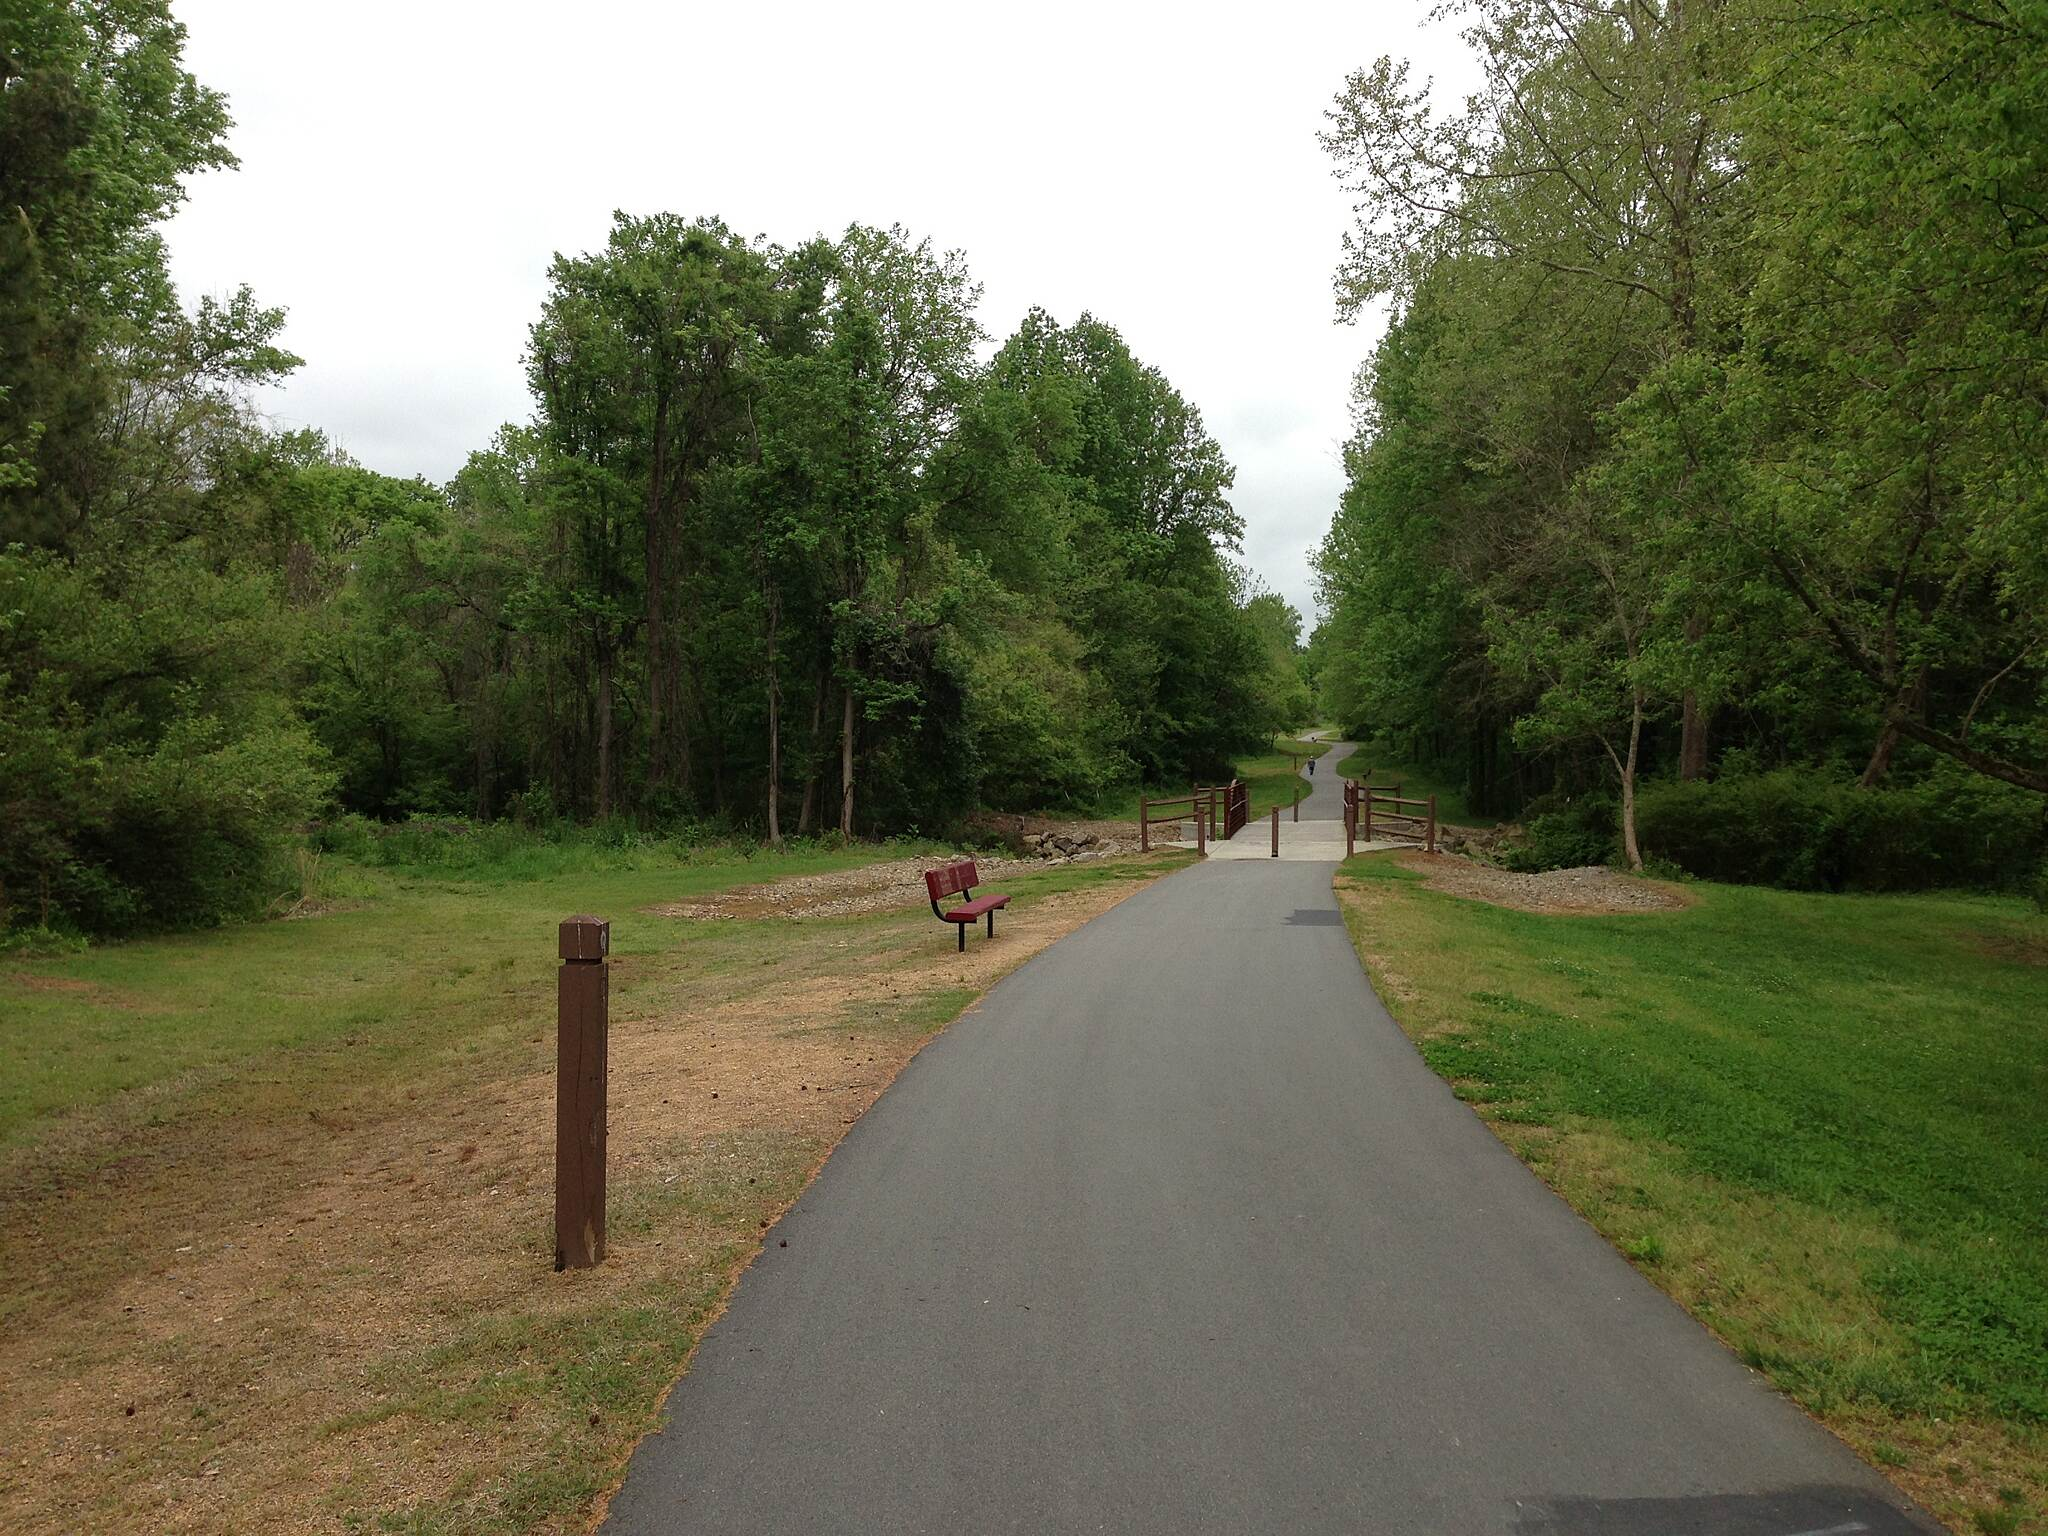 8th Street Greenway 8th Street Greenway, Kannapolis, NC A section of the greenway between West A Street and West 8th Street